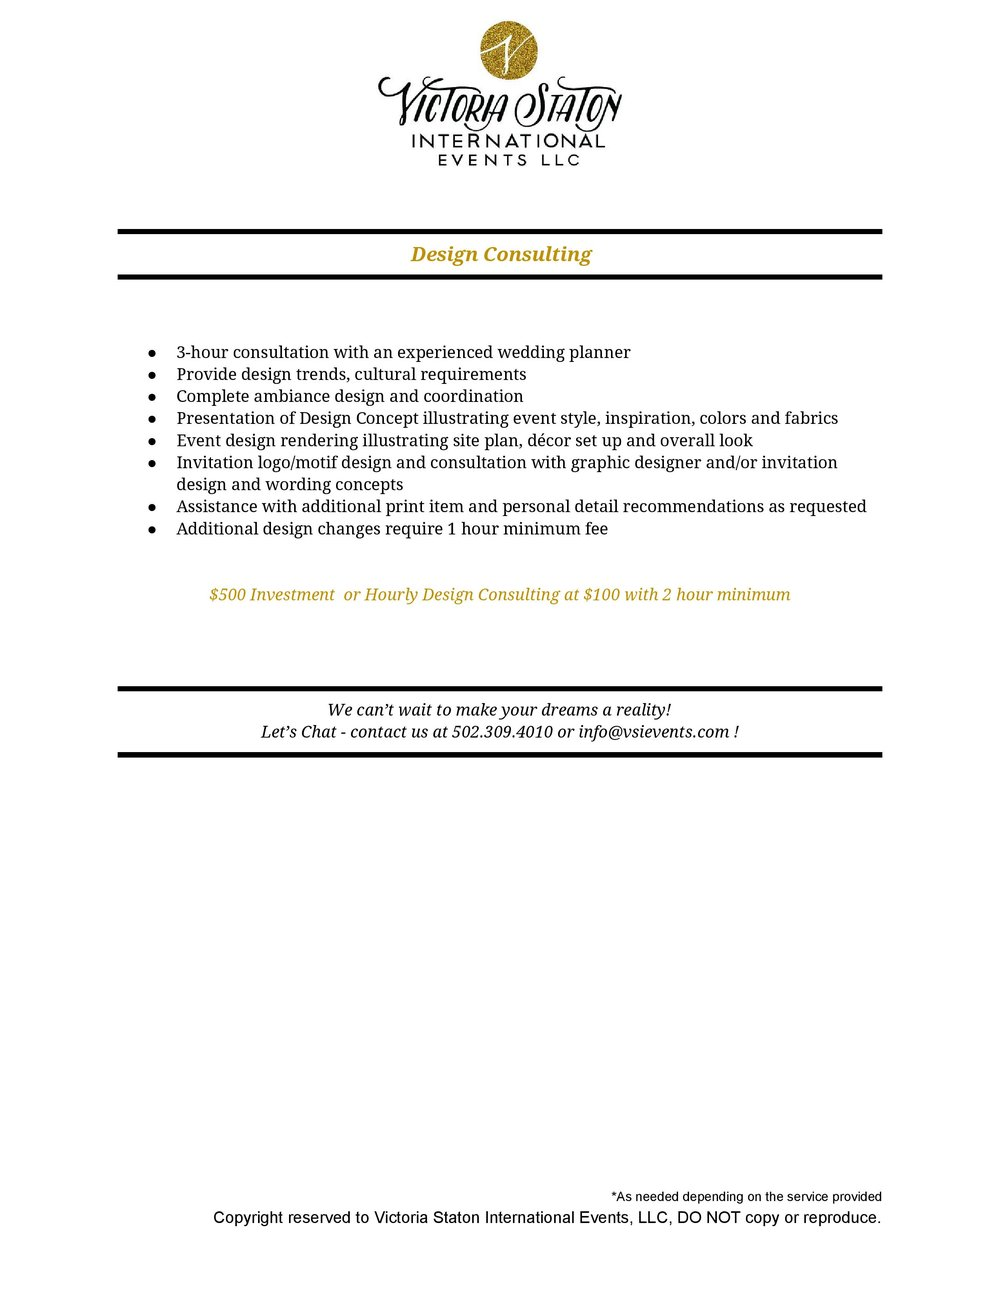 Design Consulting-page-001.jpg